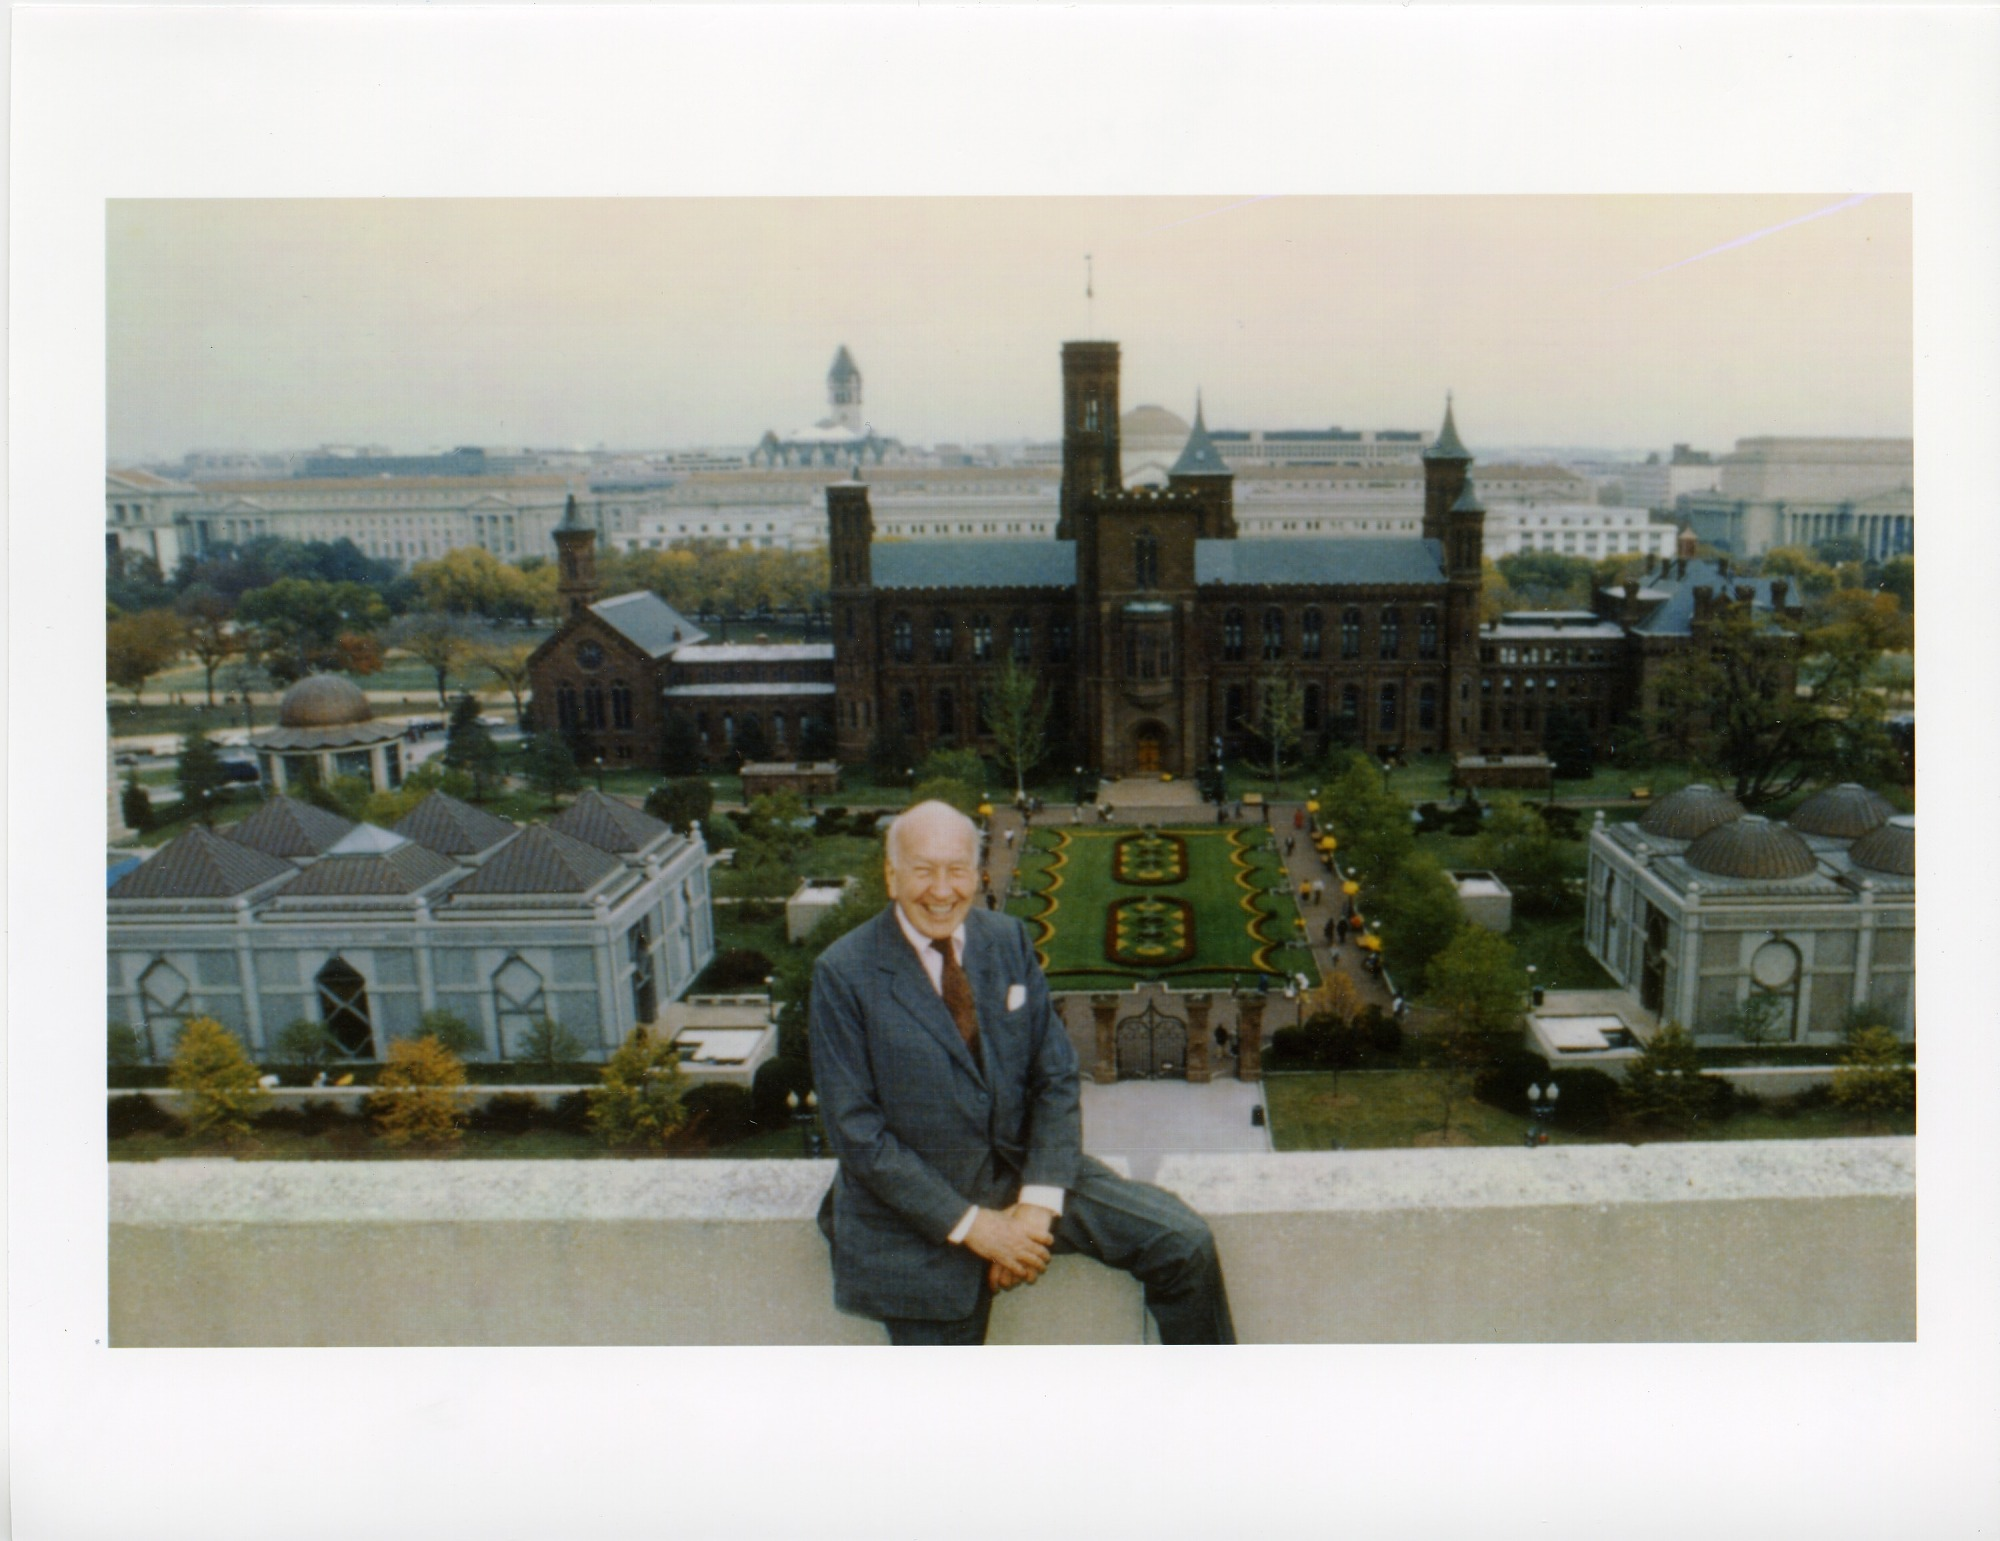 Smithsonian Secretary S. Dillon Ripley sitting on roof of building  across from South Yard. Aerial view of Quadrangle shows Smithsonian  Institution Building (SIB) or Castle, Enid A. Haupt Garden, National  Museum of African Art (NMAfA) and Arthur M. Sackler Gallery (AMSG). The  National Mall and National Museum of Natural History can be seen behind  the Castle in the distance.